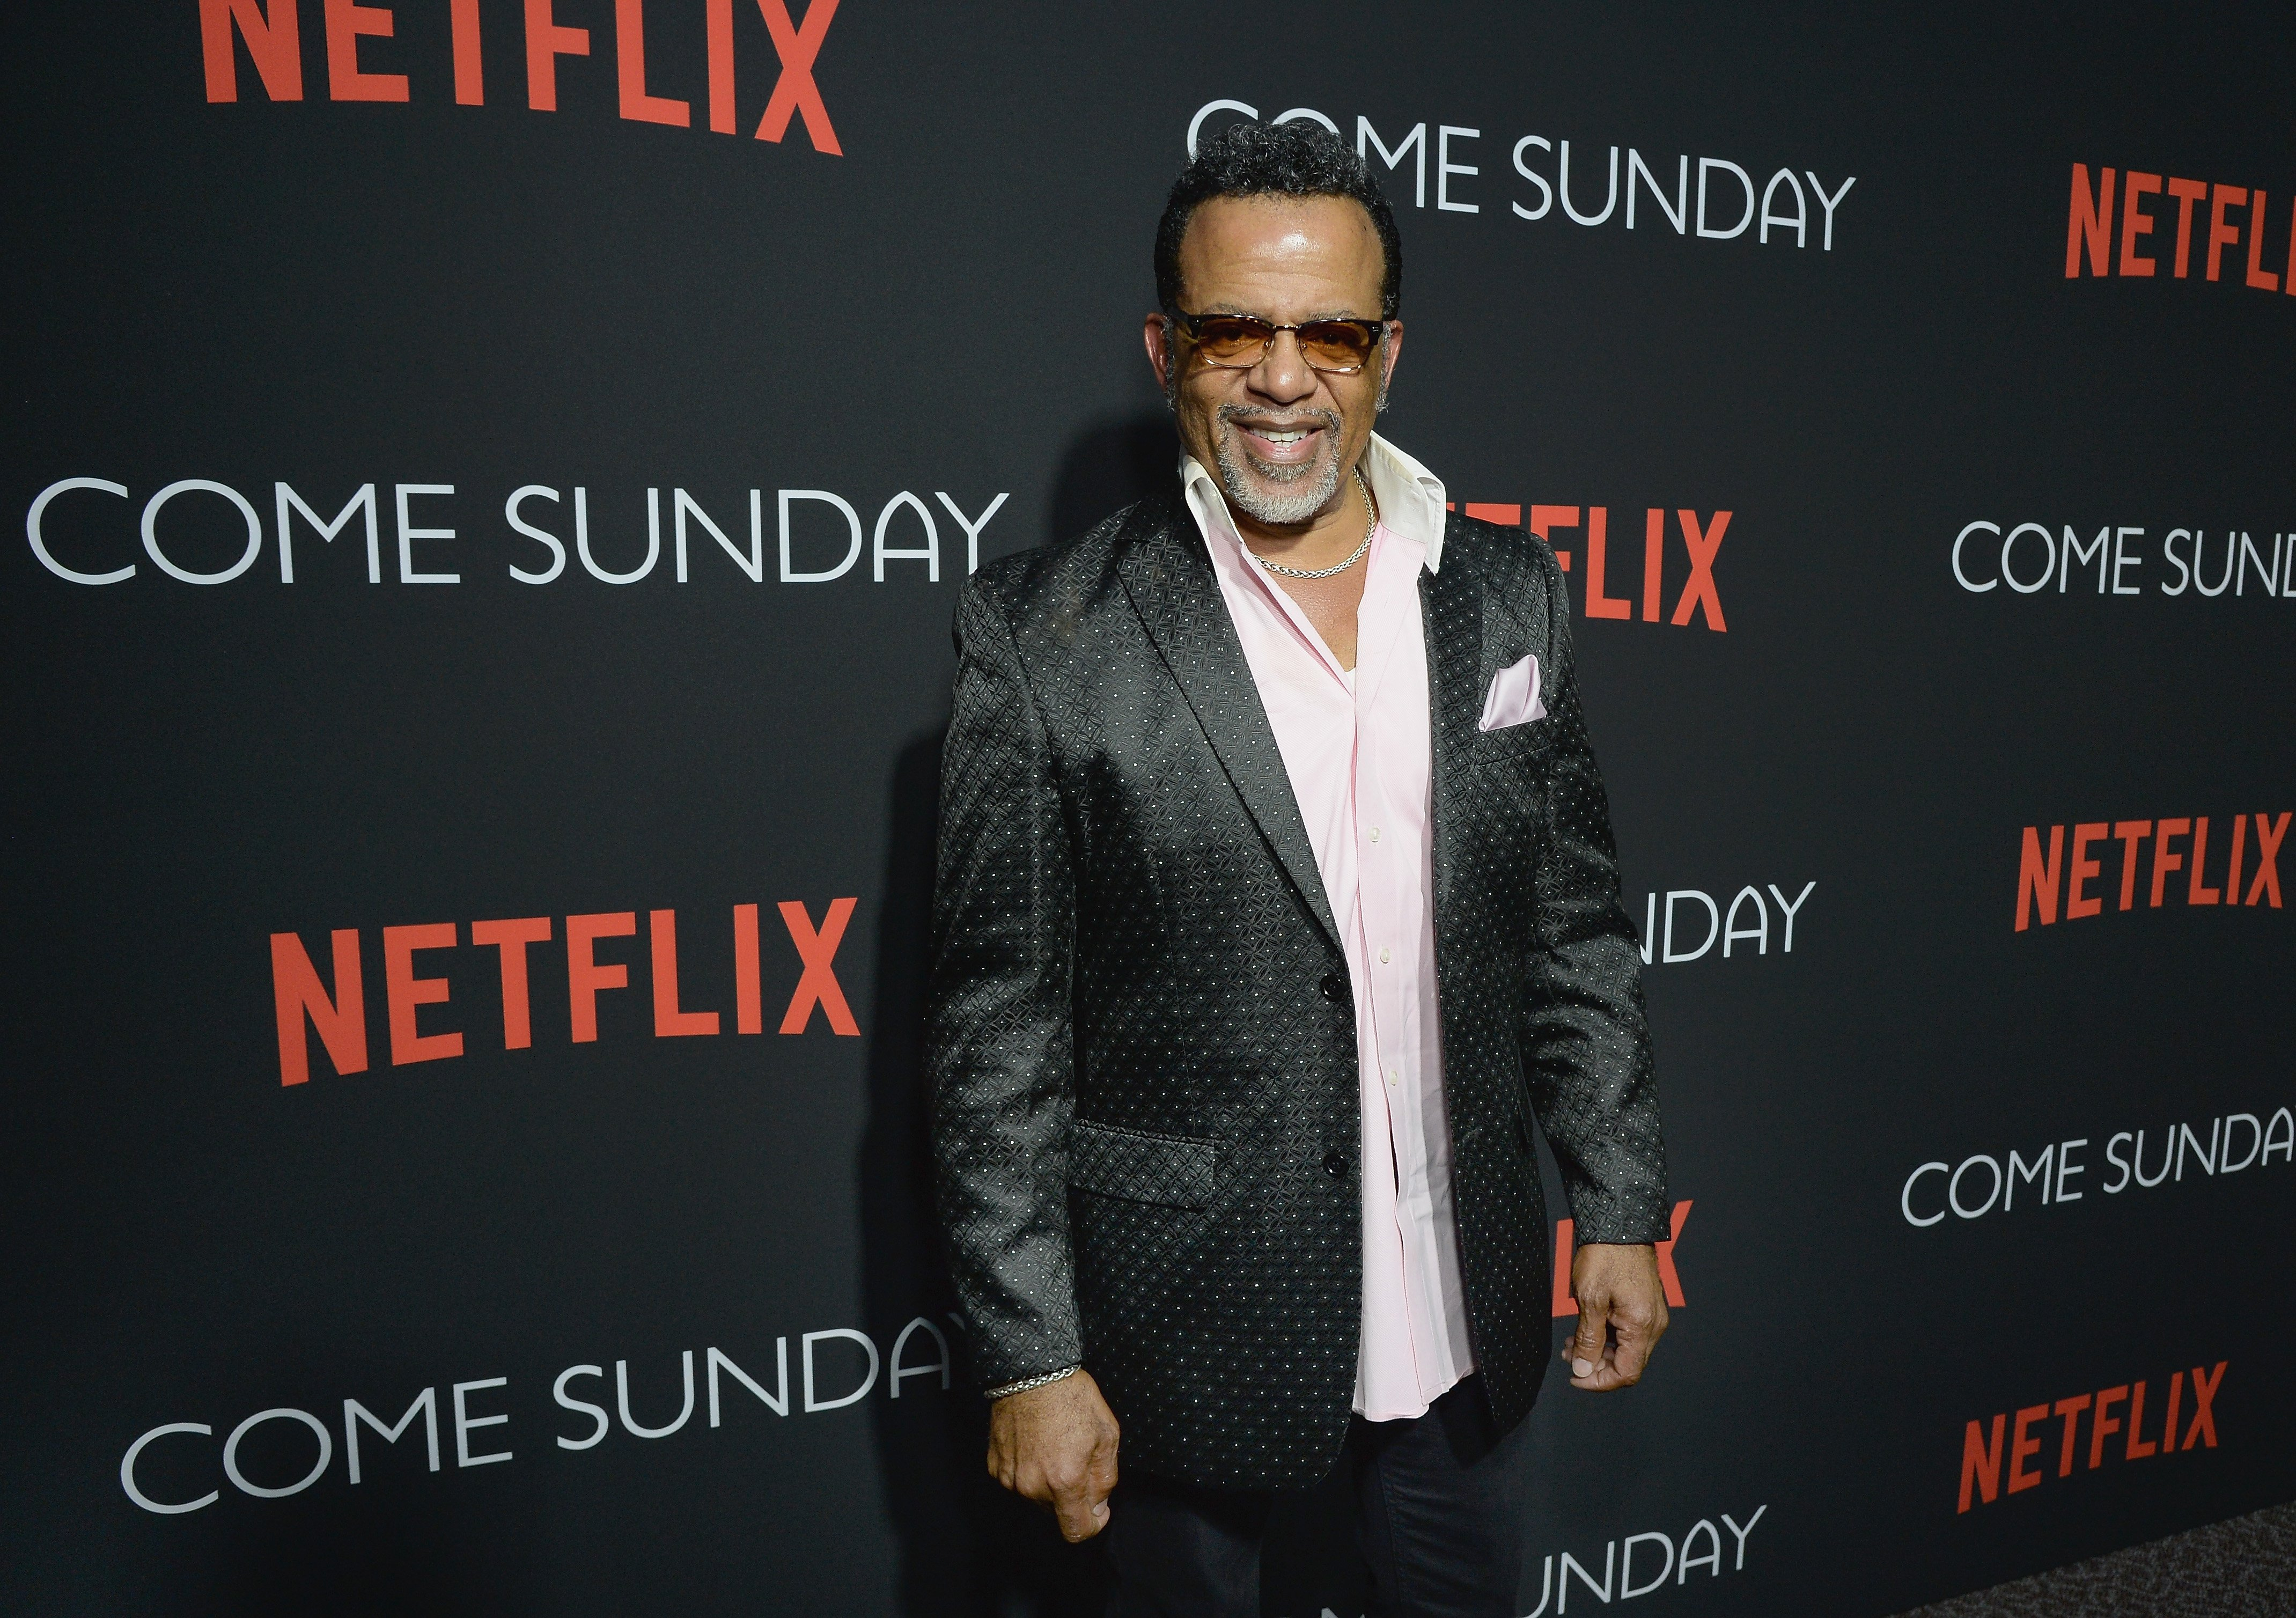 """Carlton Pearson attends the special screening of the Netflix film """"Come Sunday"""" at the Directors Guild of America Theater in Los Angeles on April 9, 2018 